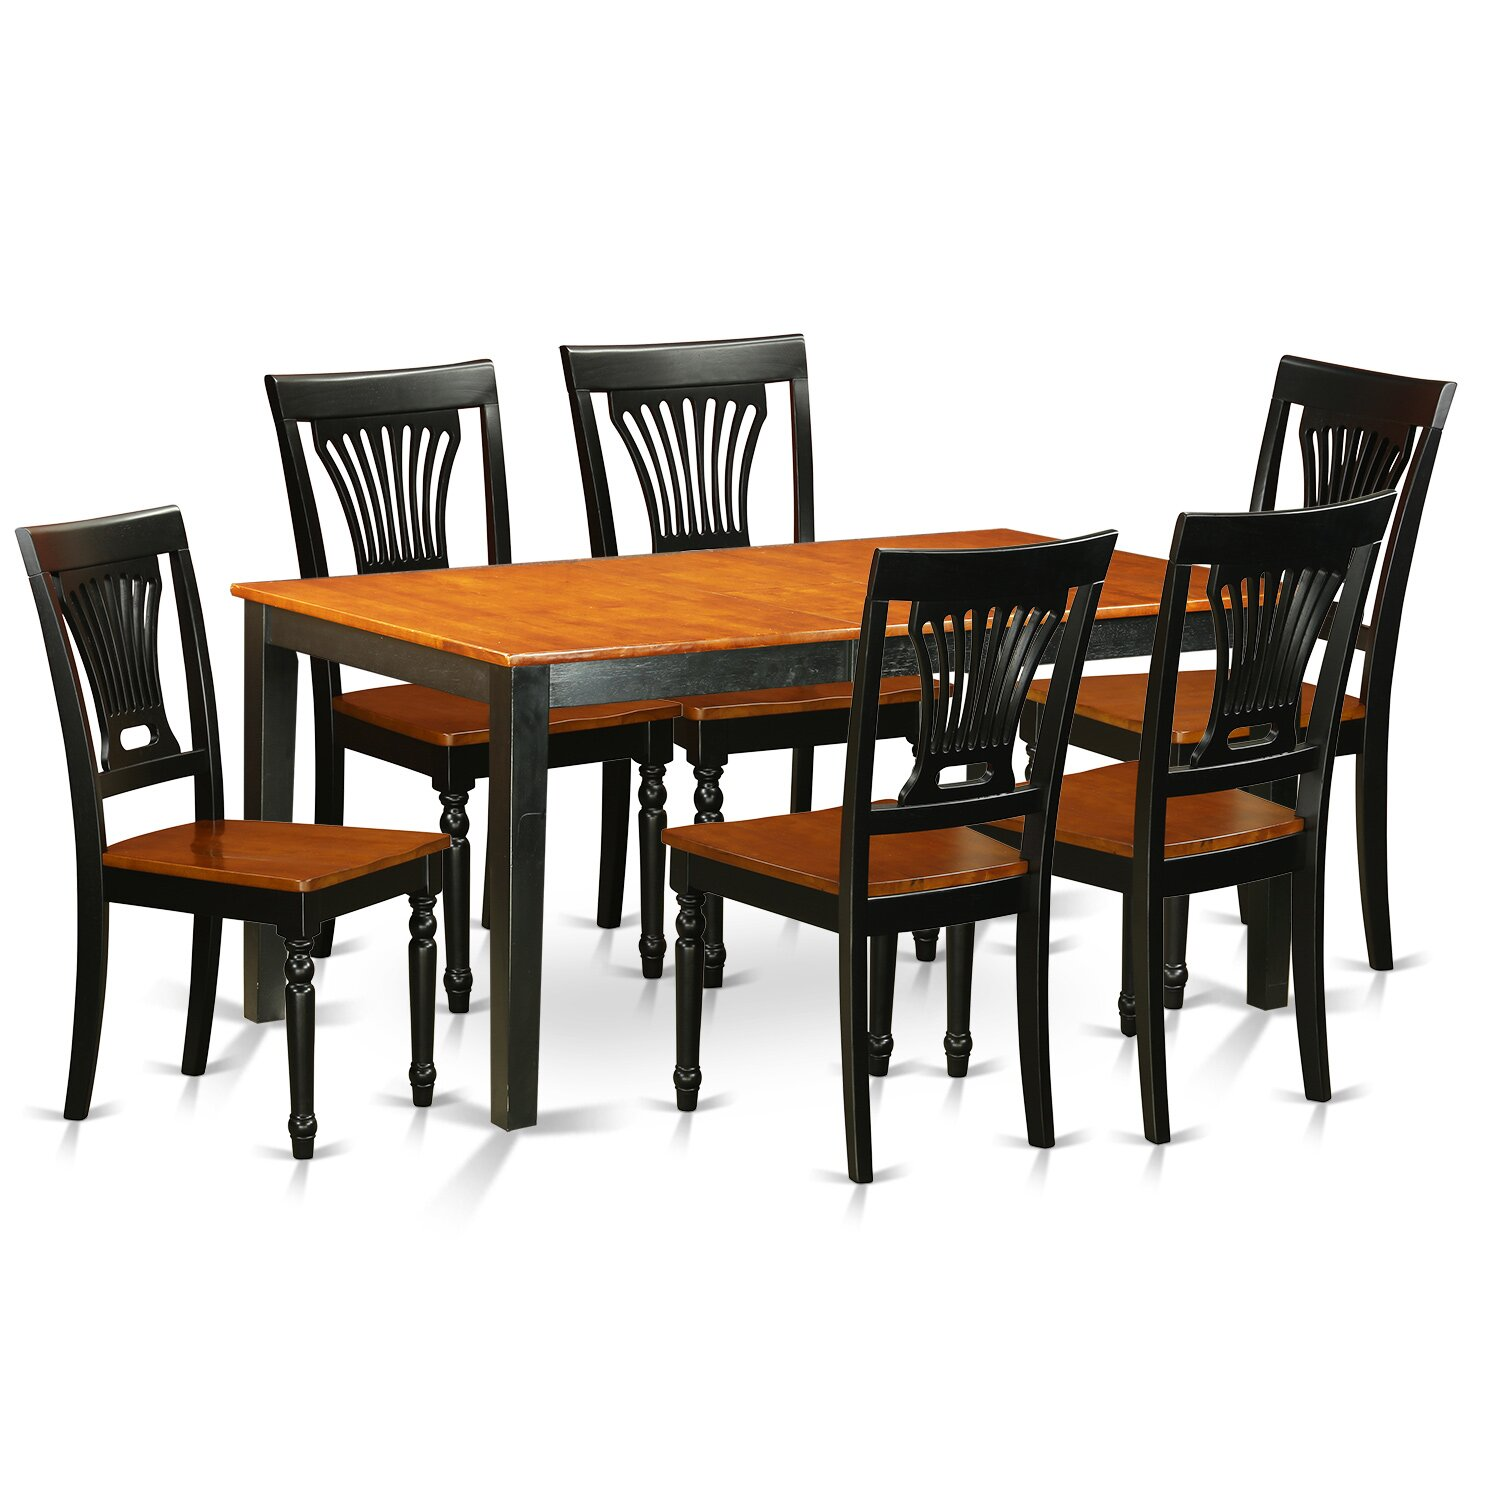 East west nicoli 7 piece dining set wayfair for Kitchen table set 6 chairs